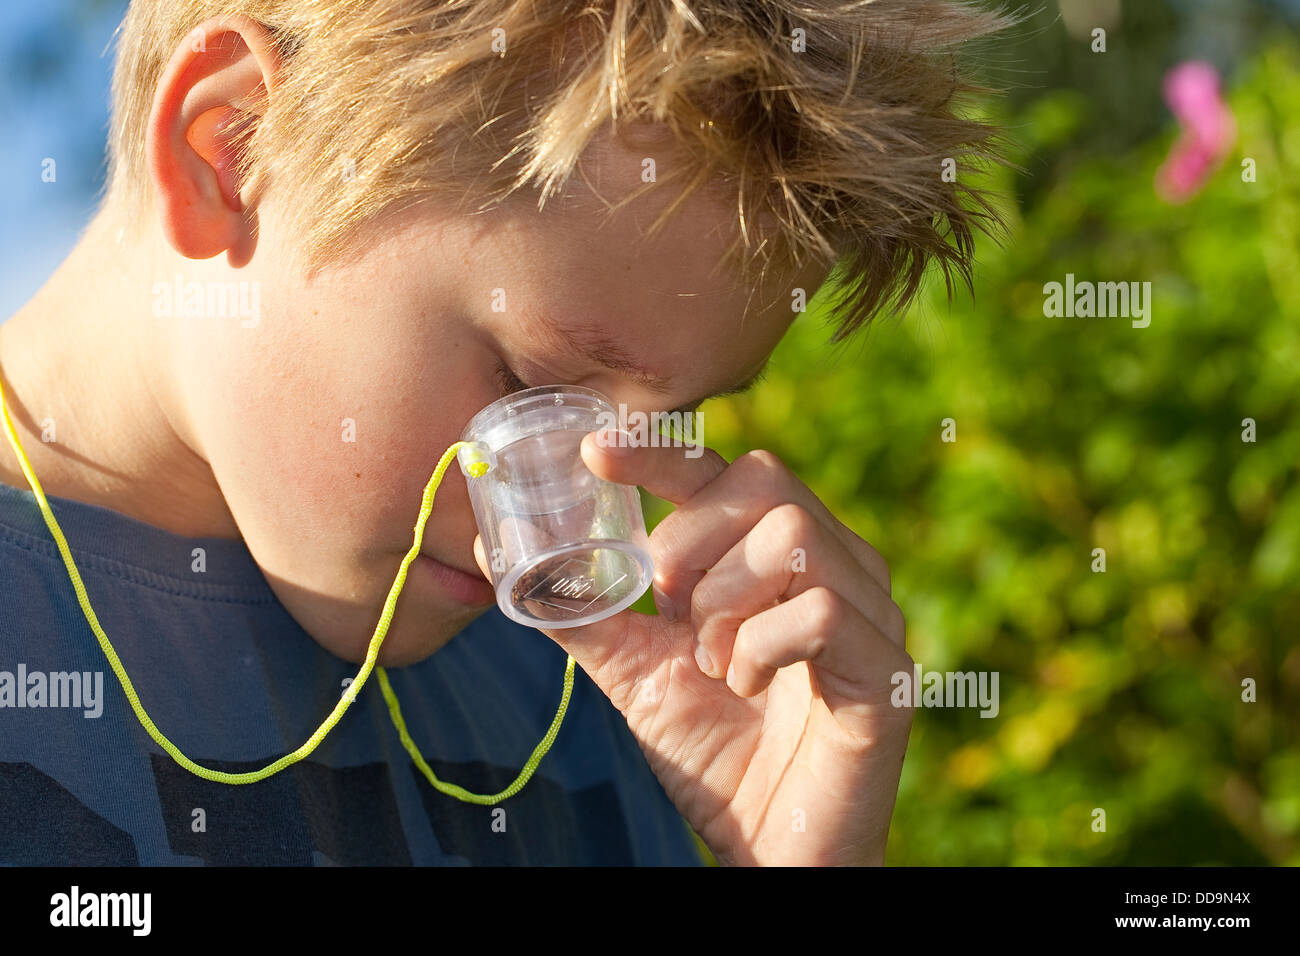 Child, loupe, magnifier, Junge, Kind beobachtet Insekt in Becherlupenglas, Becherlupe, Lupe Stock Photo